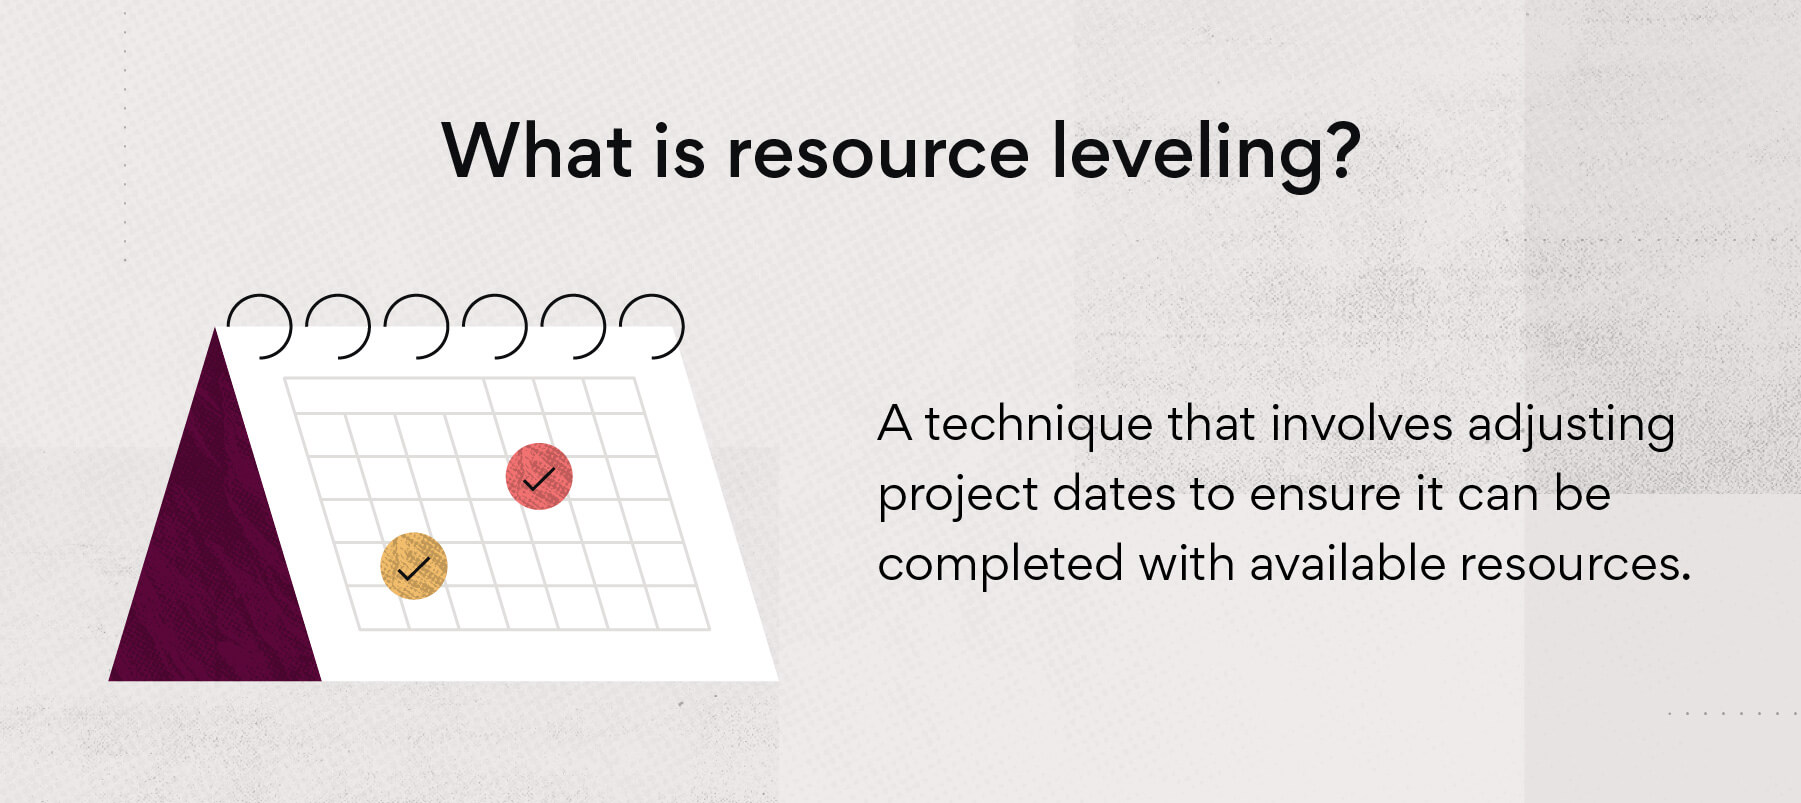 What is resource leveling?